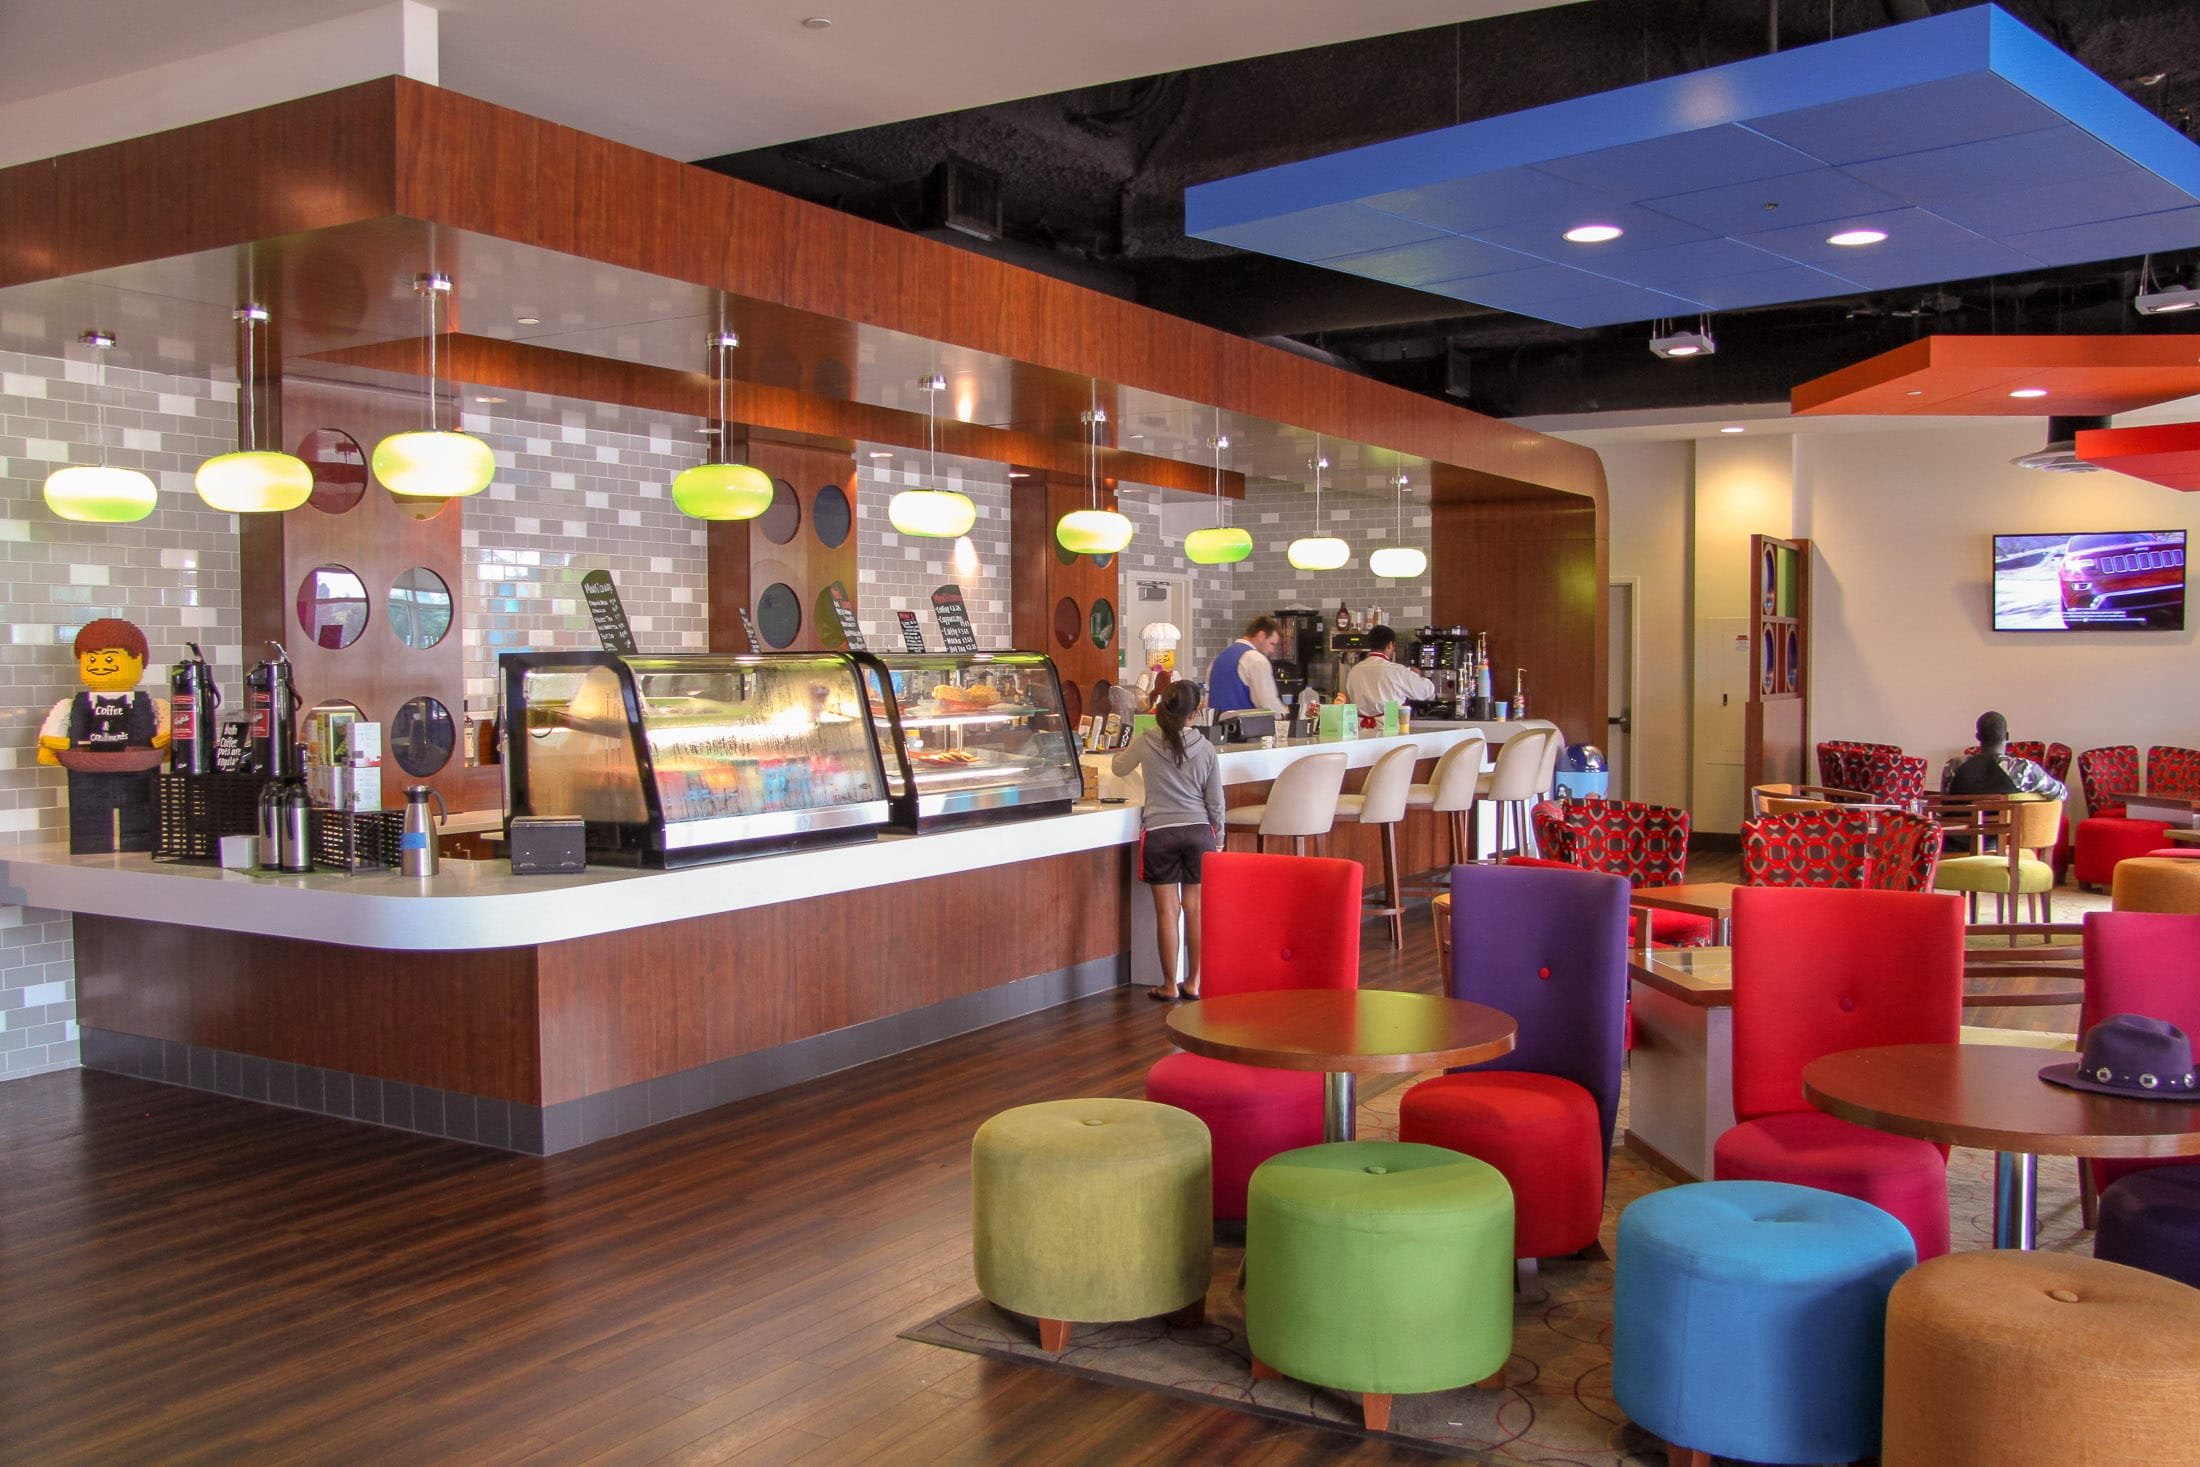 Minis Lounge at LEGOLAND Hotel serves wine, beer, coffee and food.